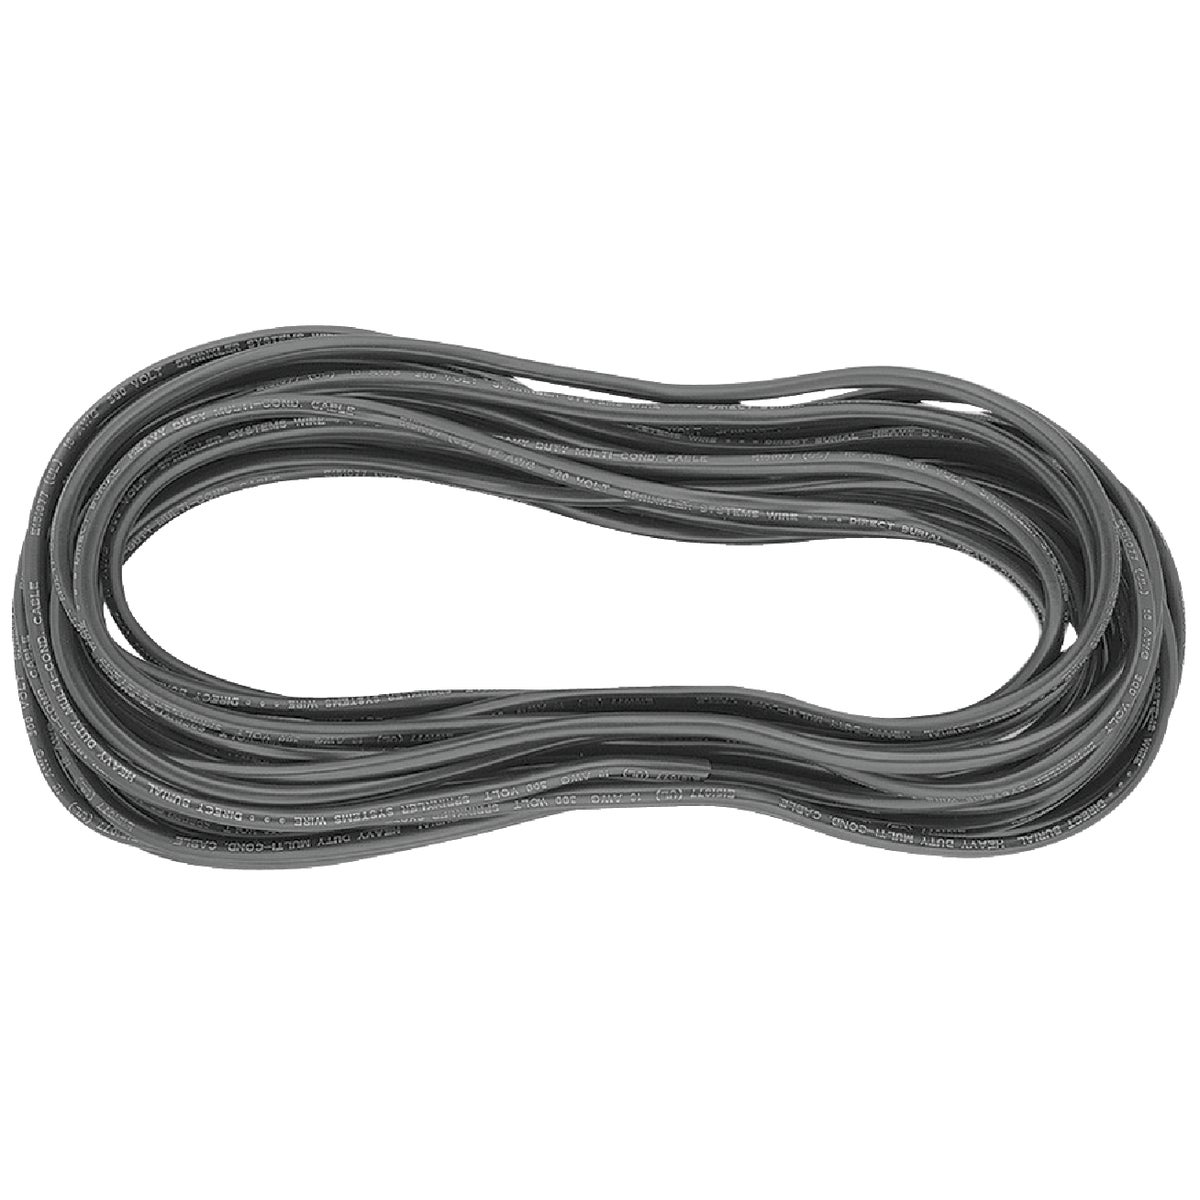 5STRD 50' SPRINKLER WIRE - 57094 by Orbit